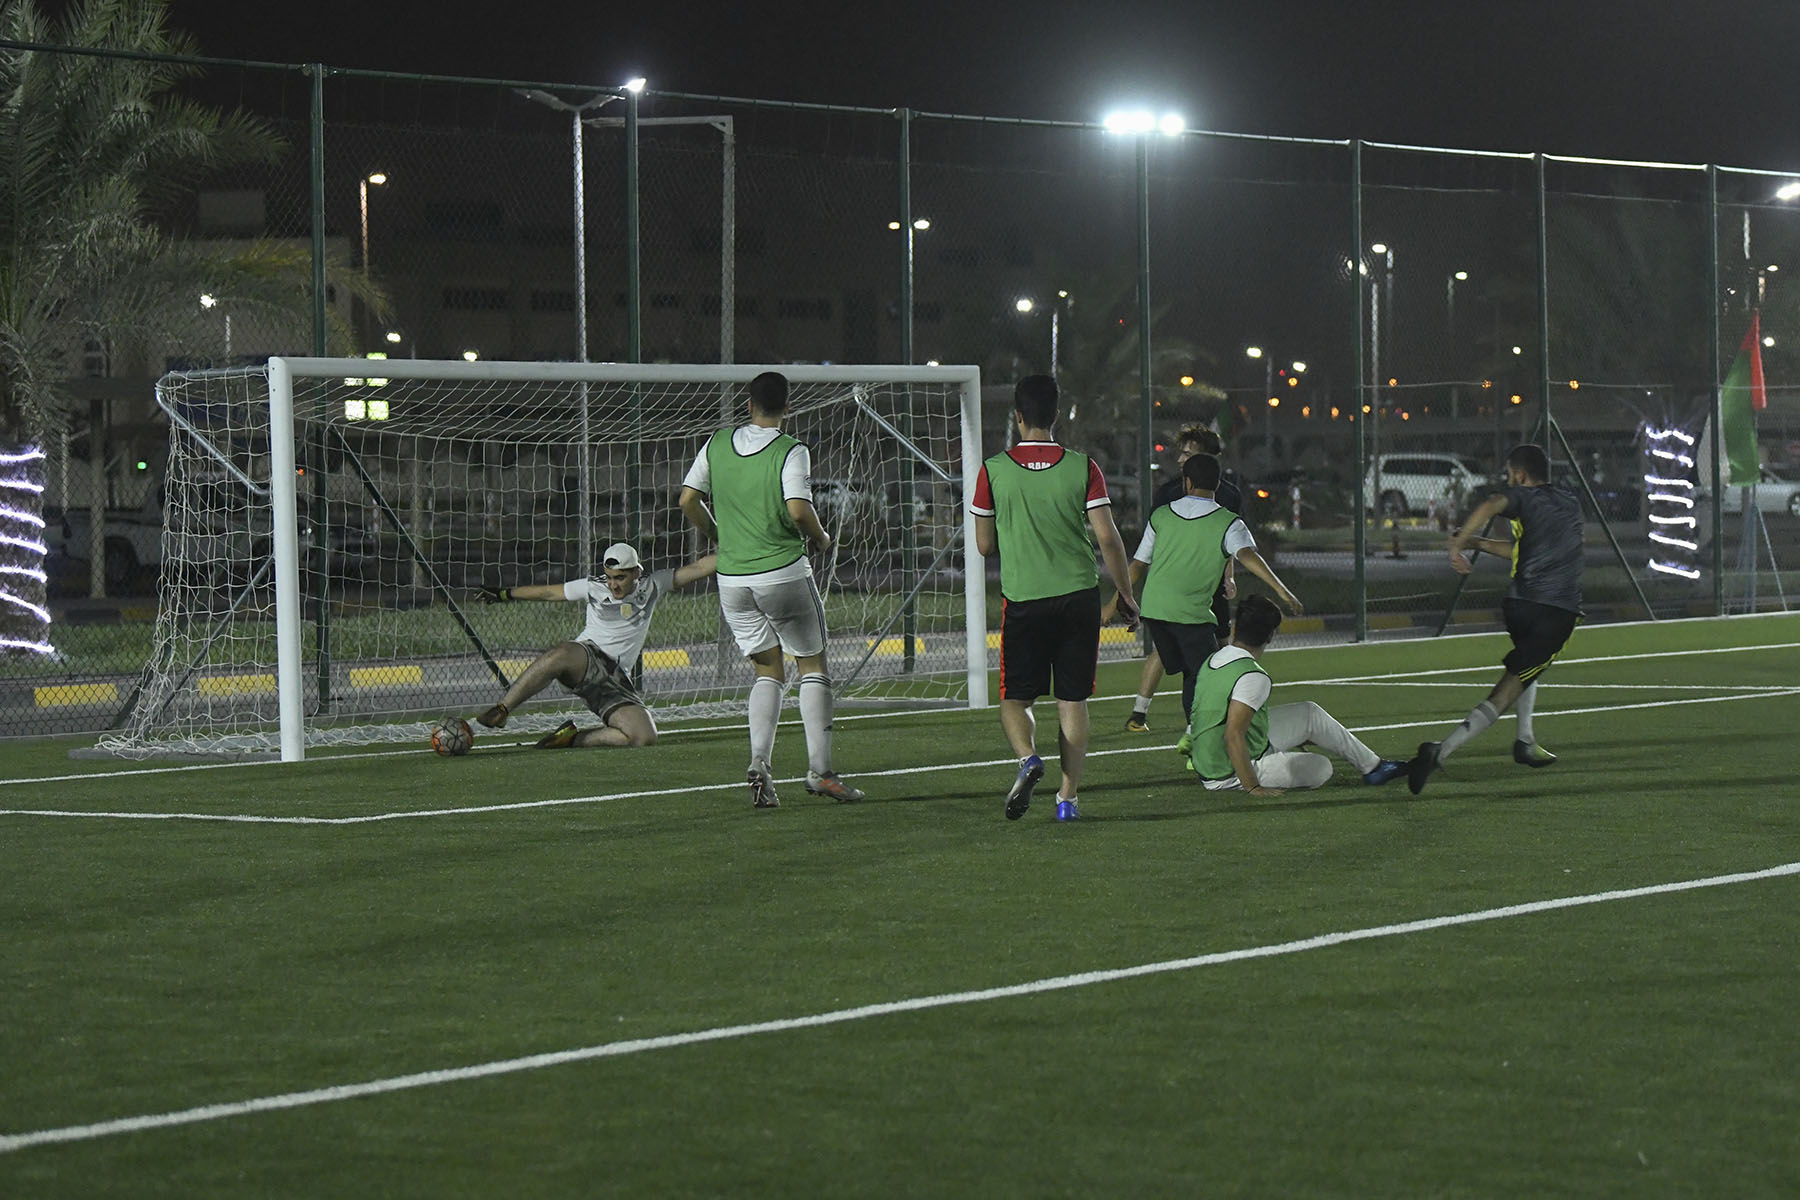 Al Malaki vs Law Students - Play-off for third place